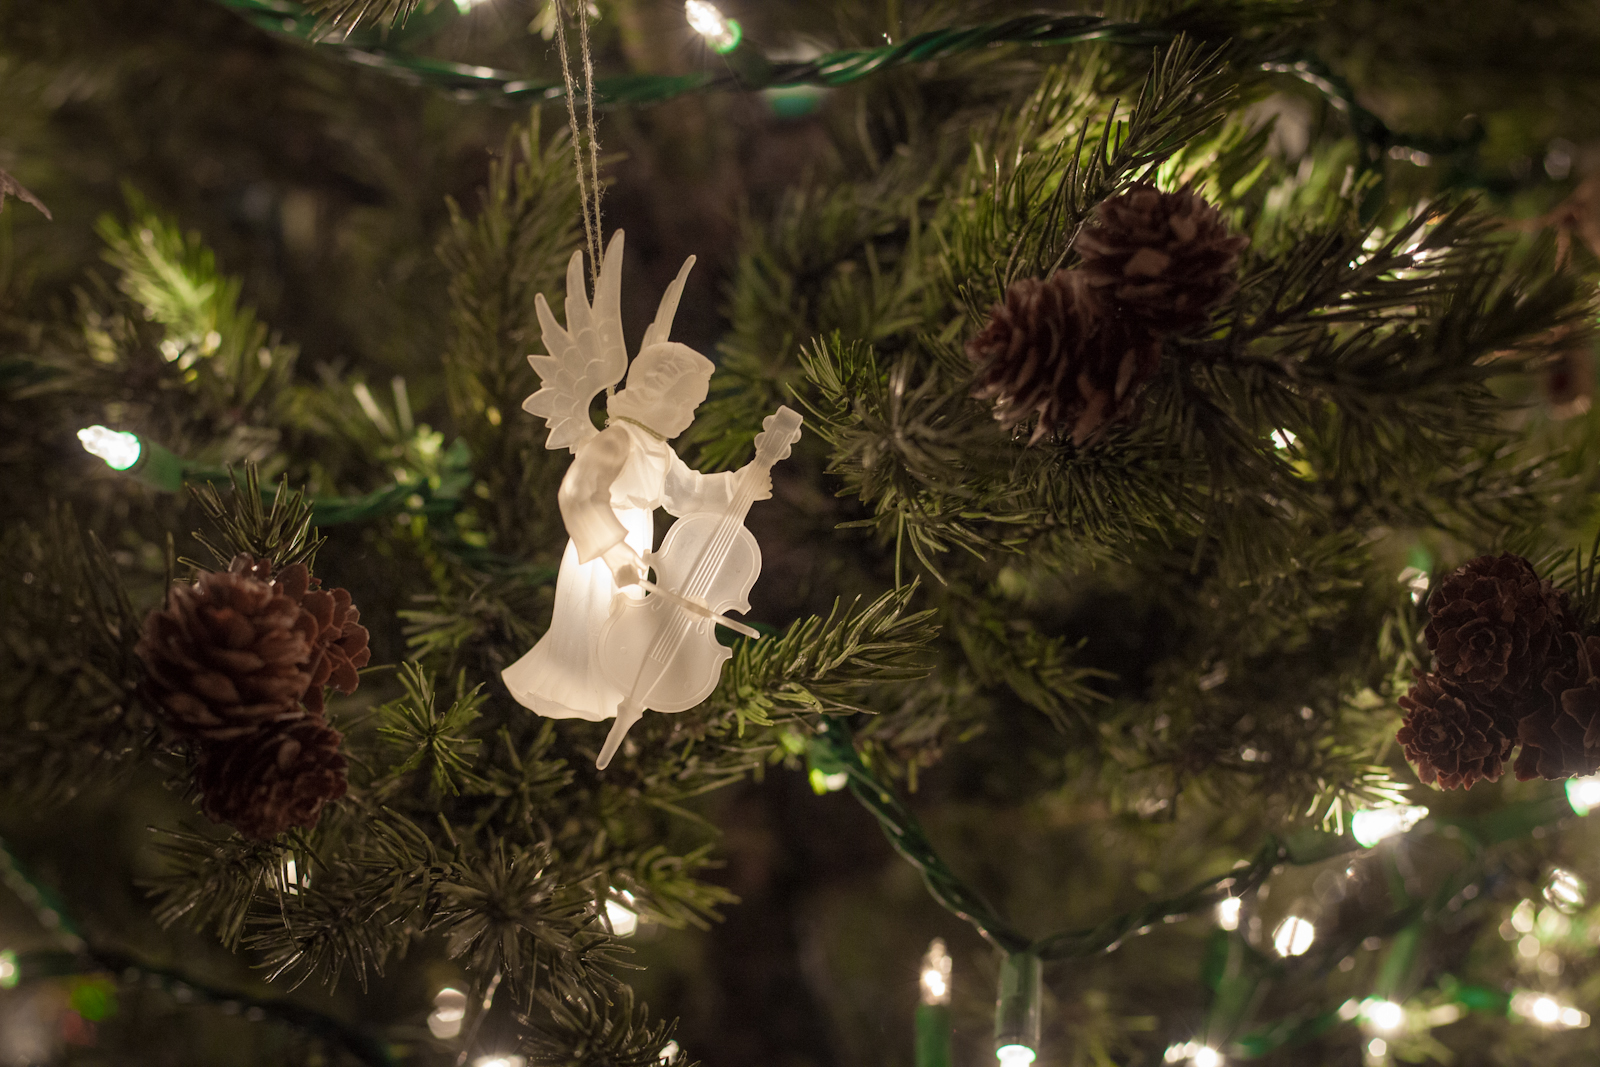 Angel ornament on a Christmas tree